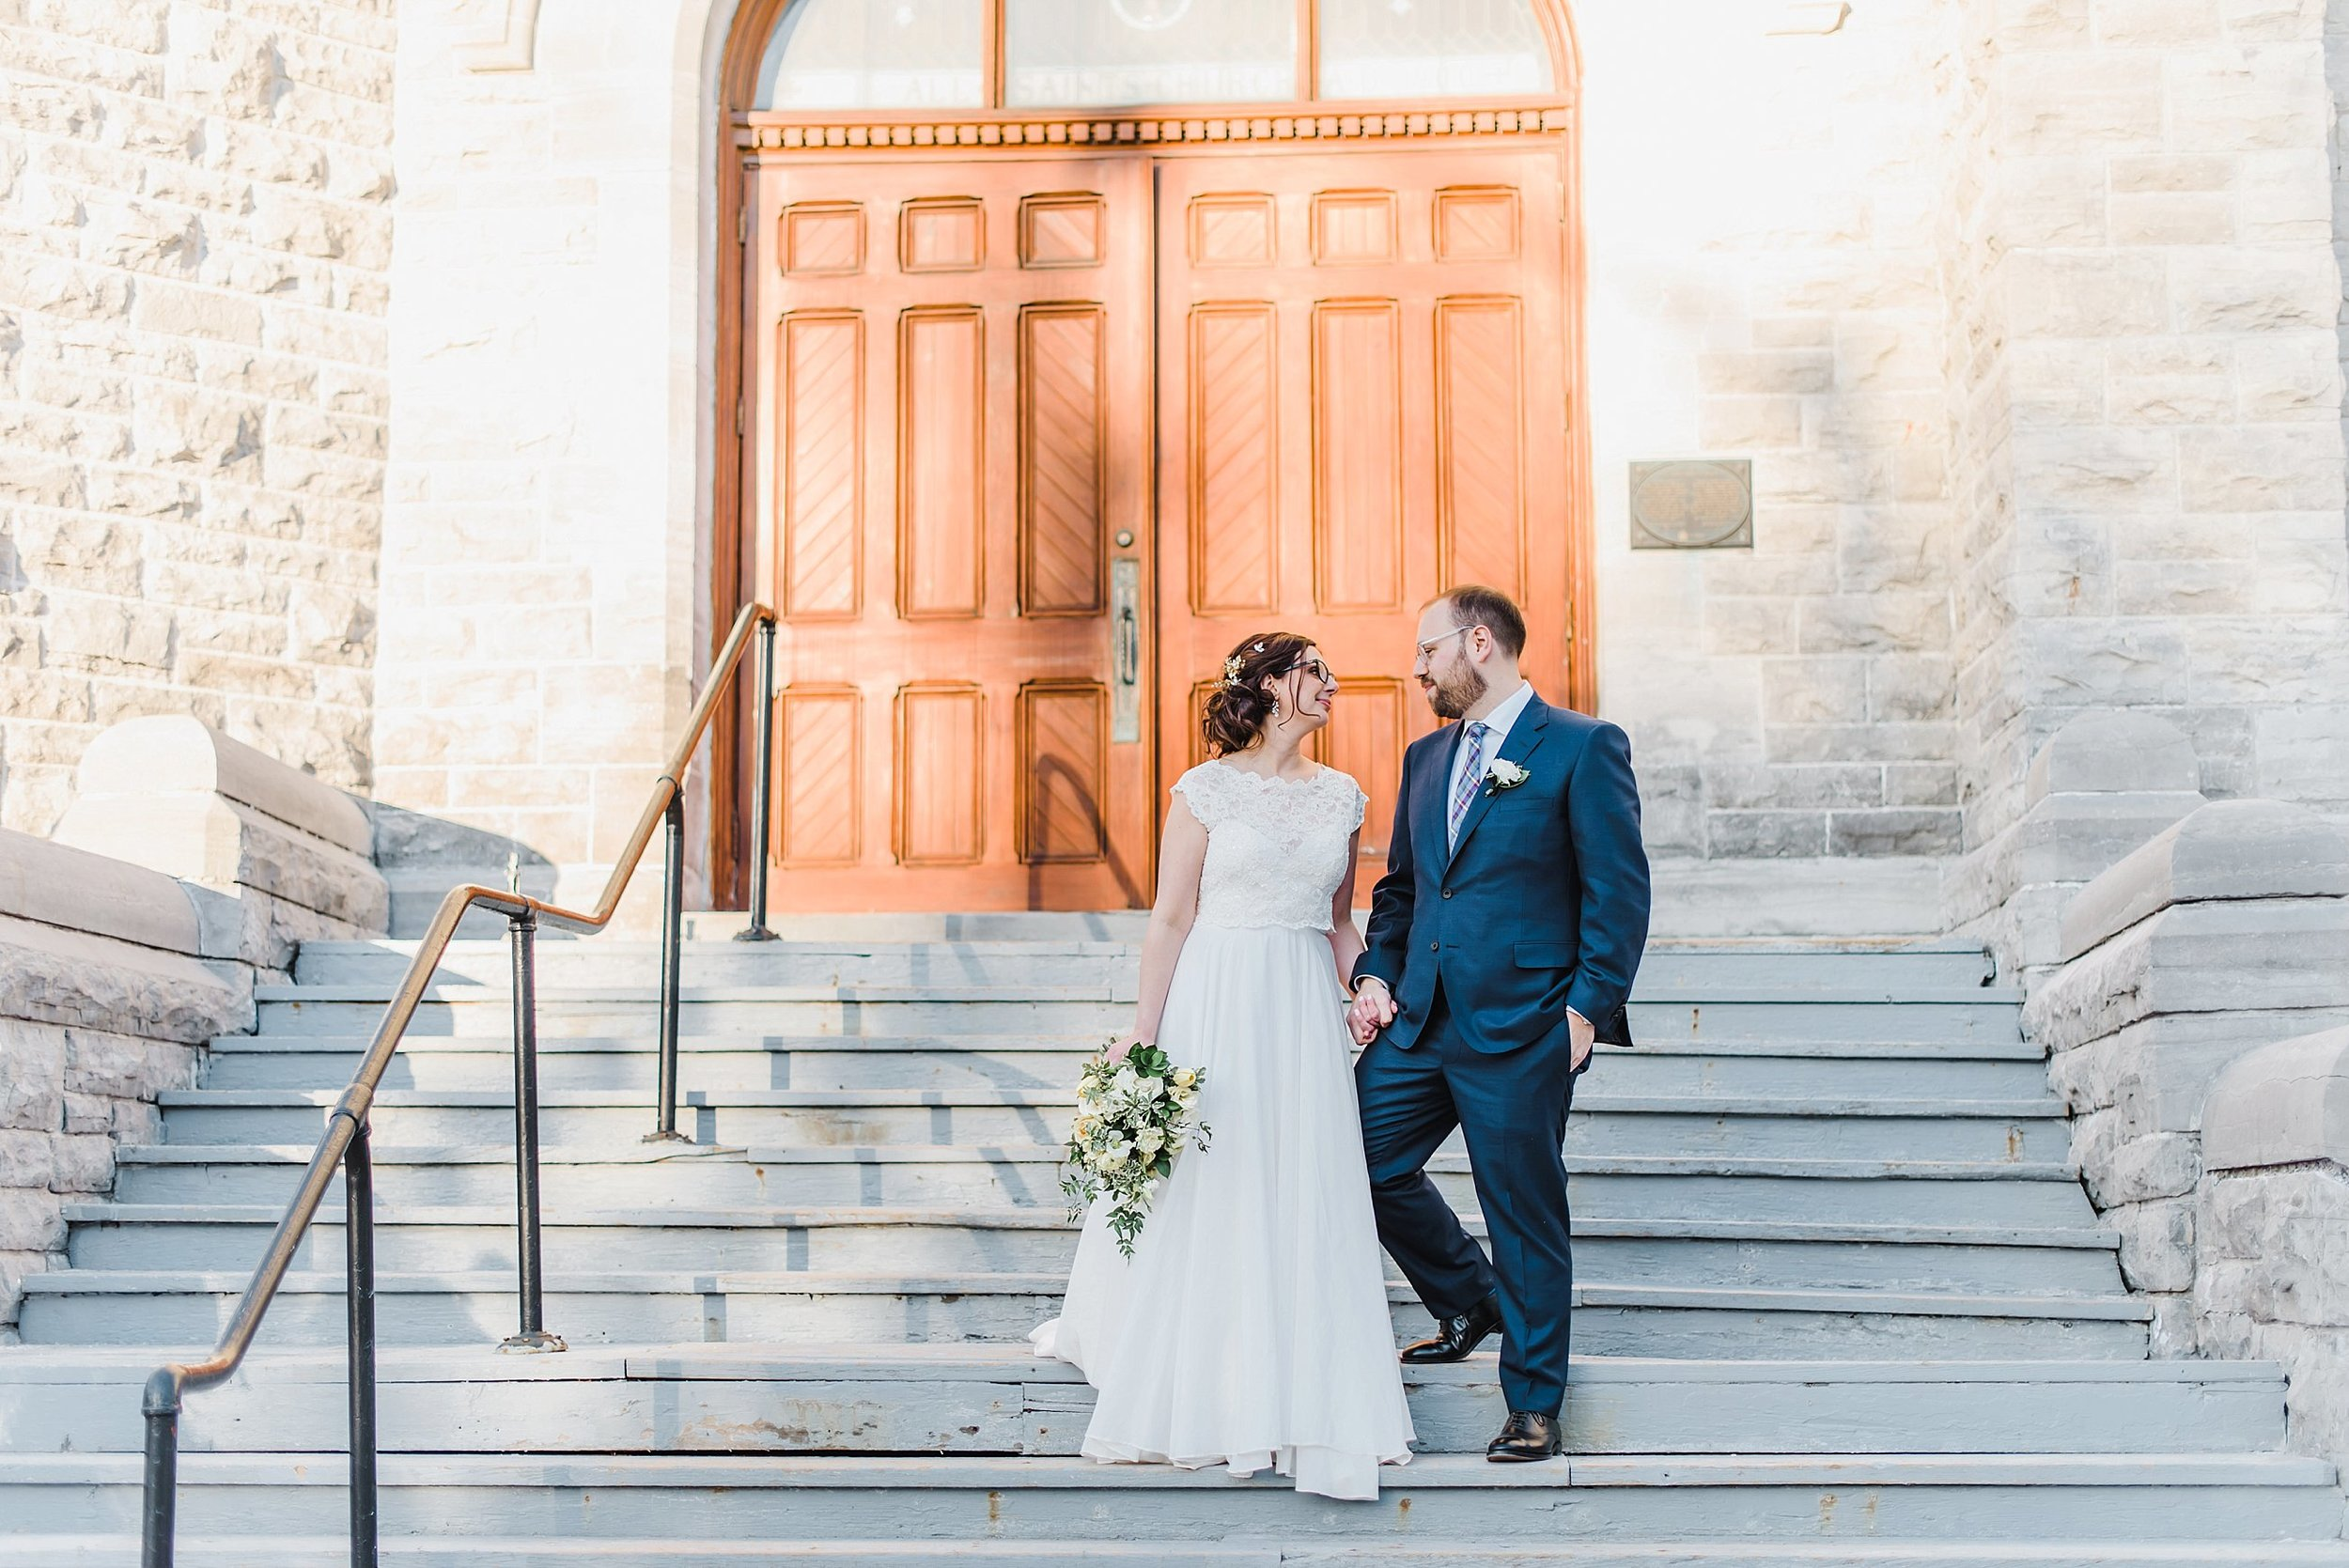 light airy indie fine art ottawa wedding photographer | Ali and Batoul Photography_0066.jpg